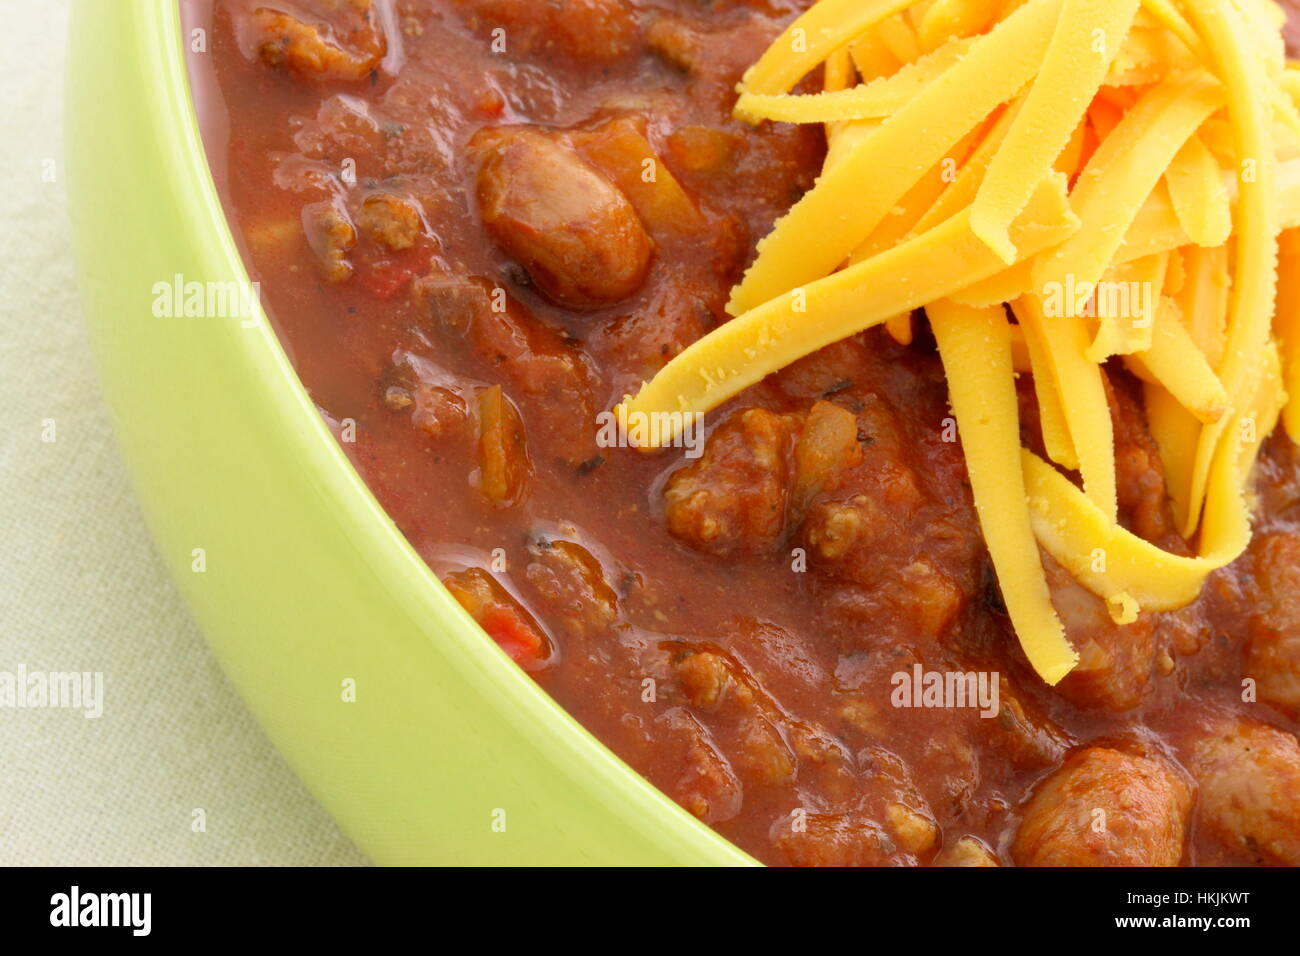 Chili Beans Made With Kidney Beans Lean Ground Beef Chili Powder Stock Photo Alamy